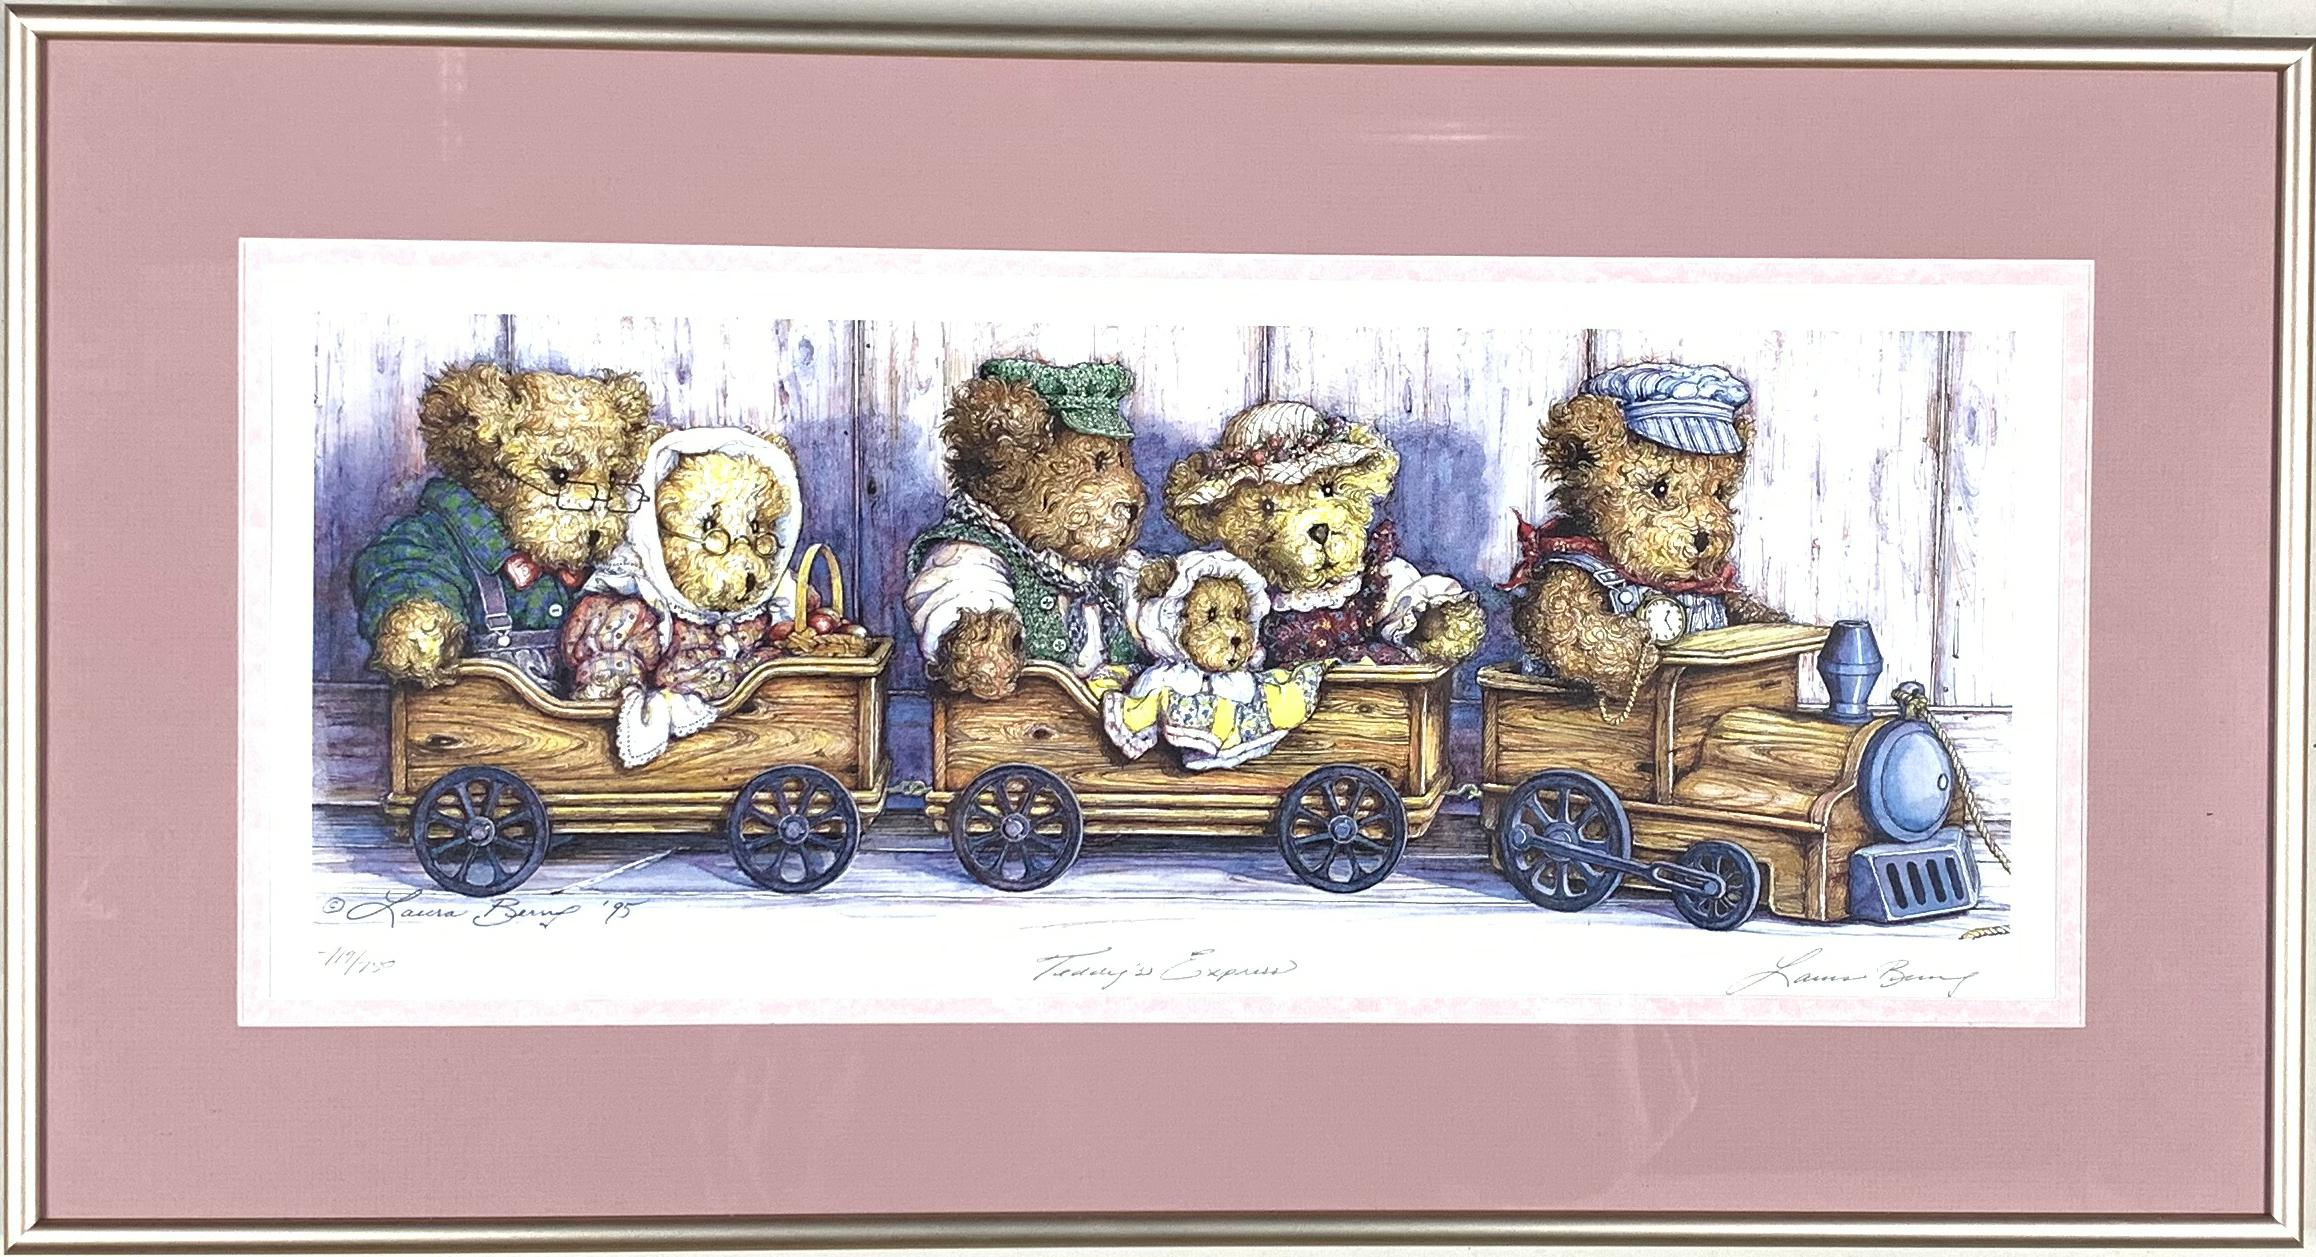 """Laura Berry's """"Teddy's Express"""" Limited Edition Print"""